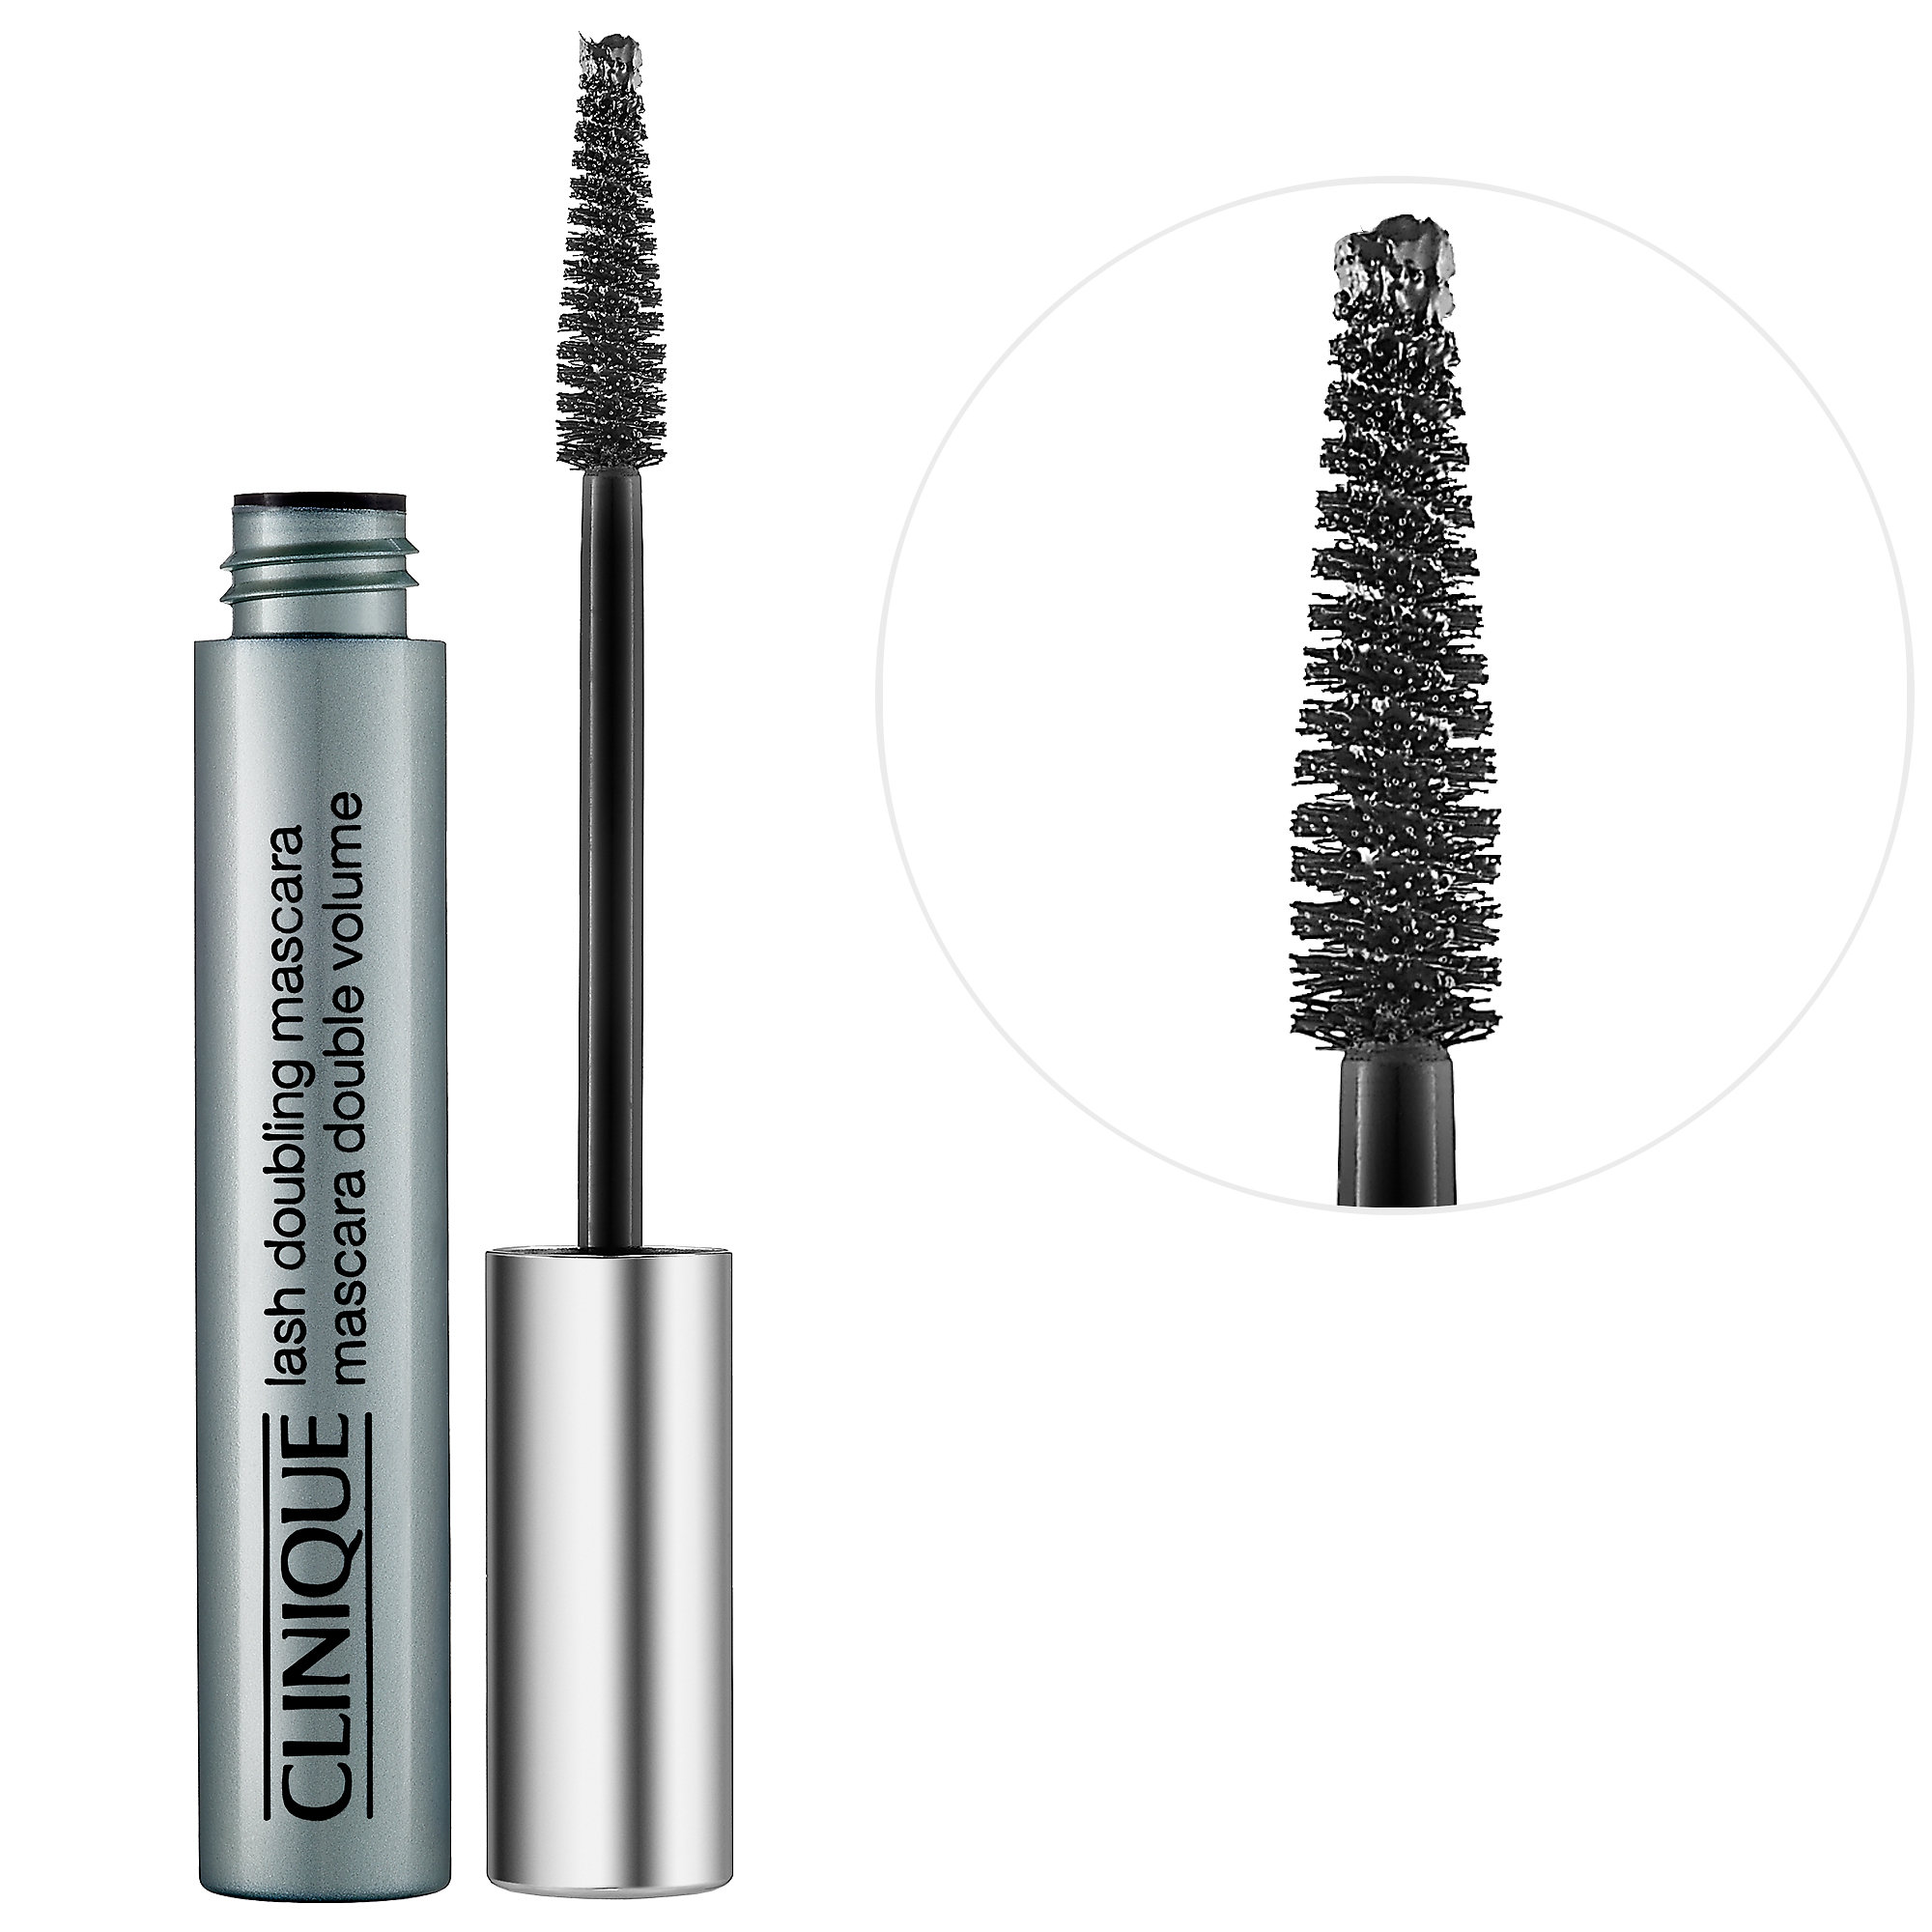 Nordstrom: 3 Clinique Mascaras, 7 Piece Clinique Gift Set AND Three Beauty Samples Only $35 Shipped